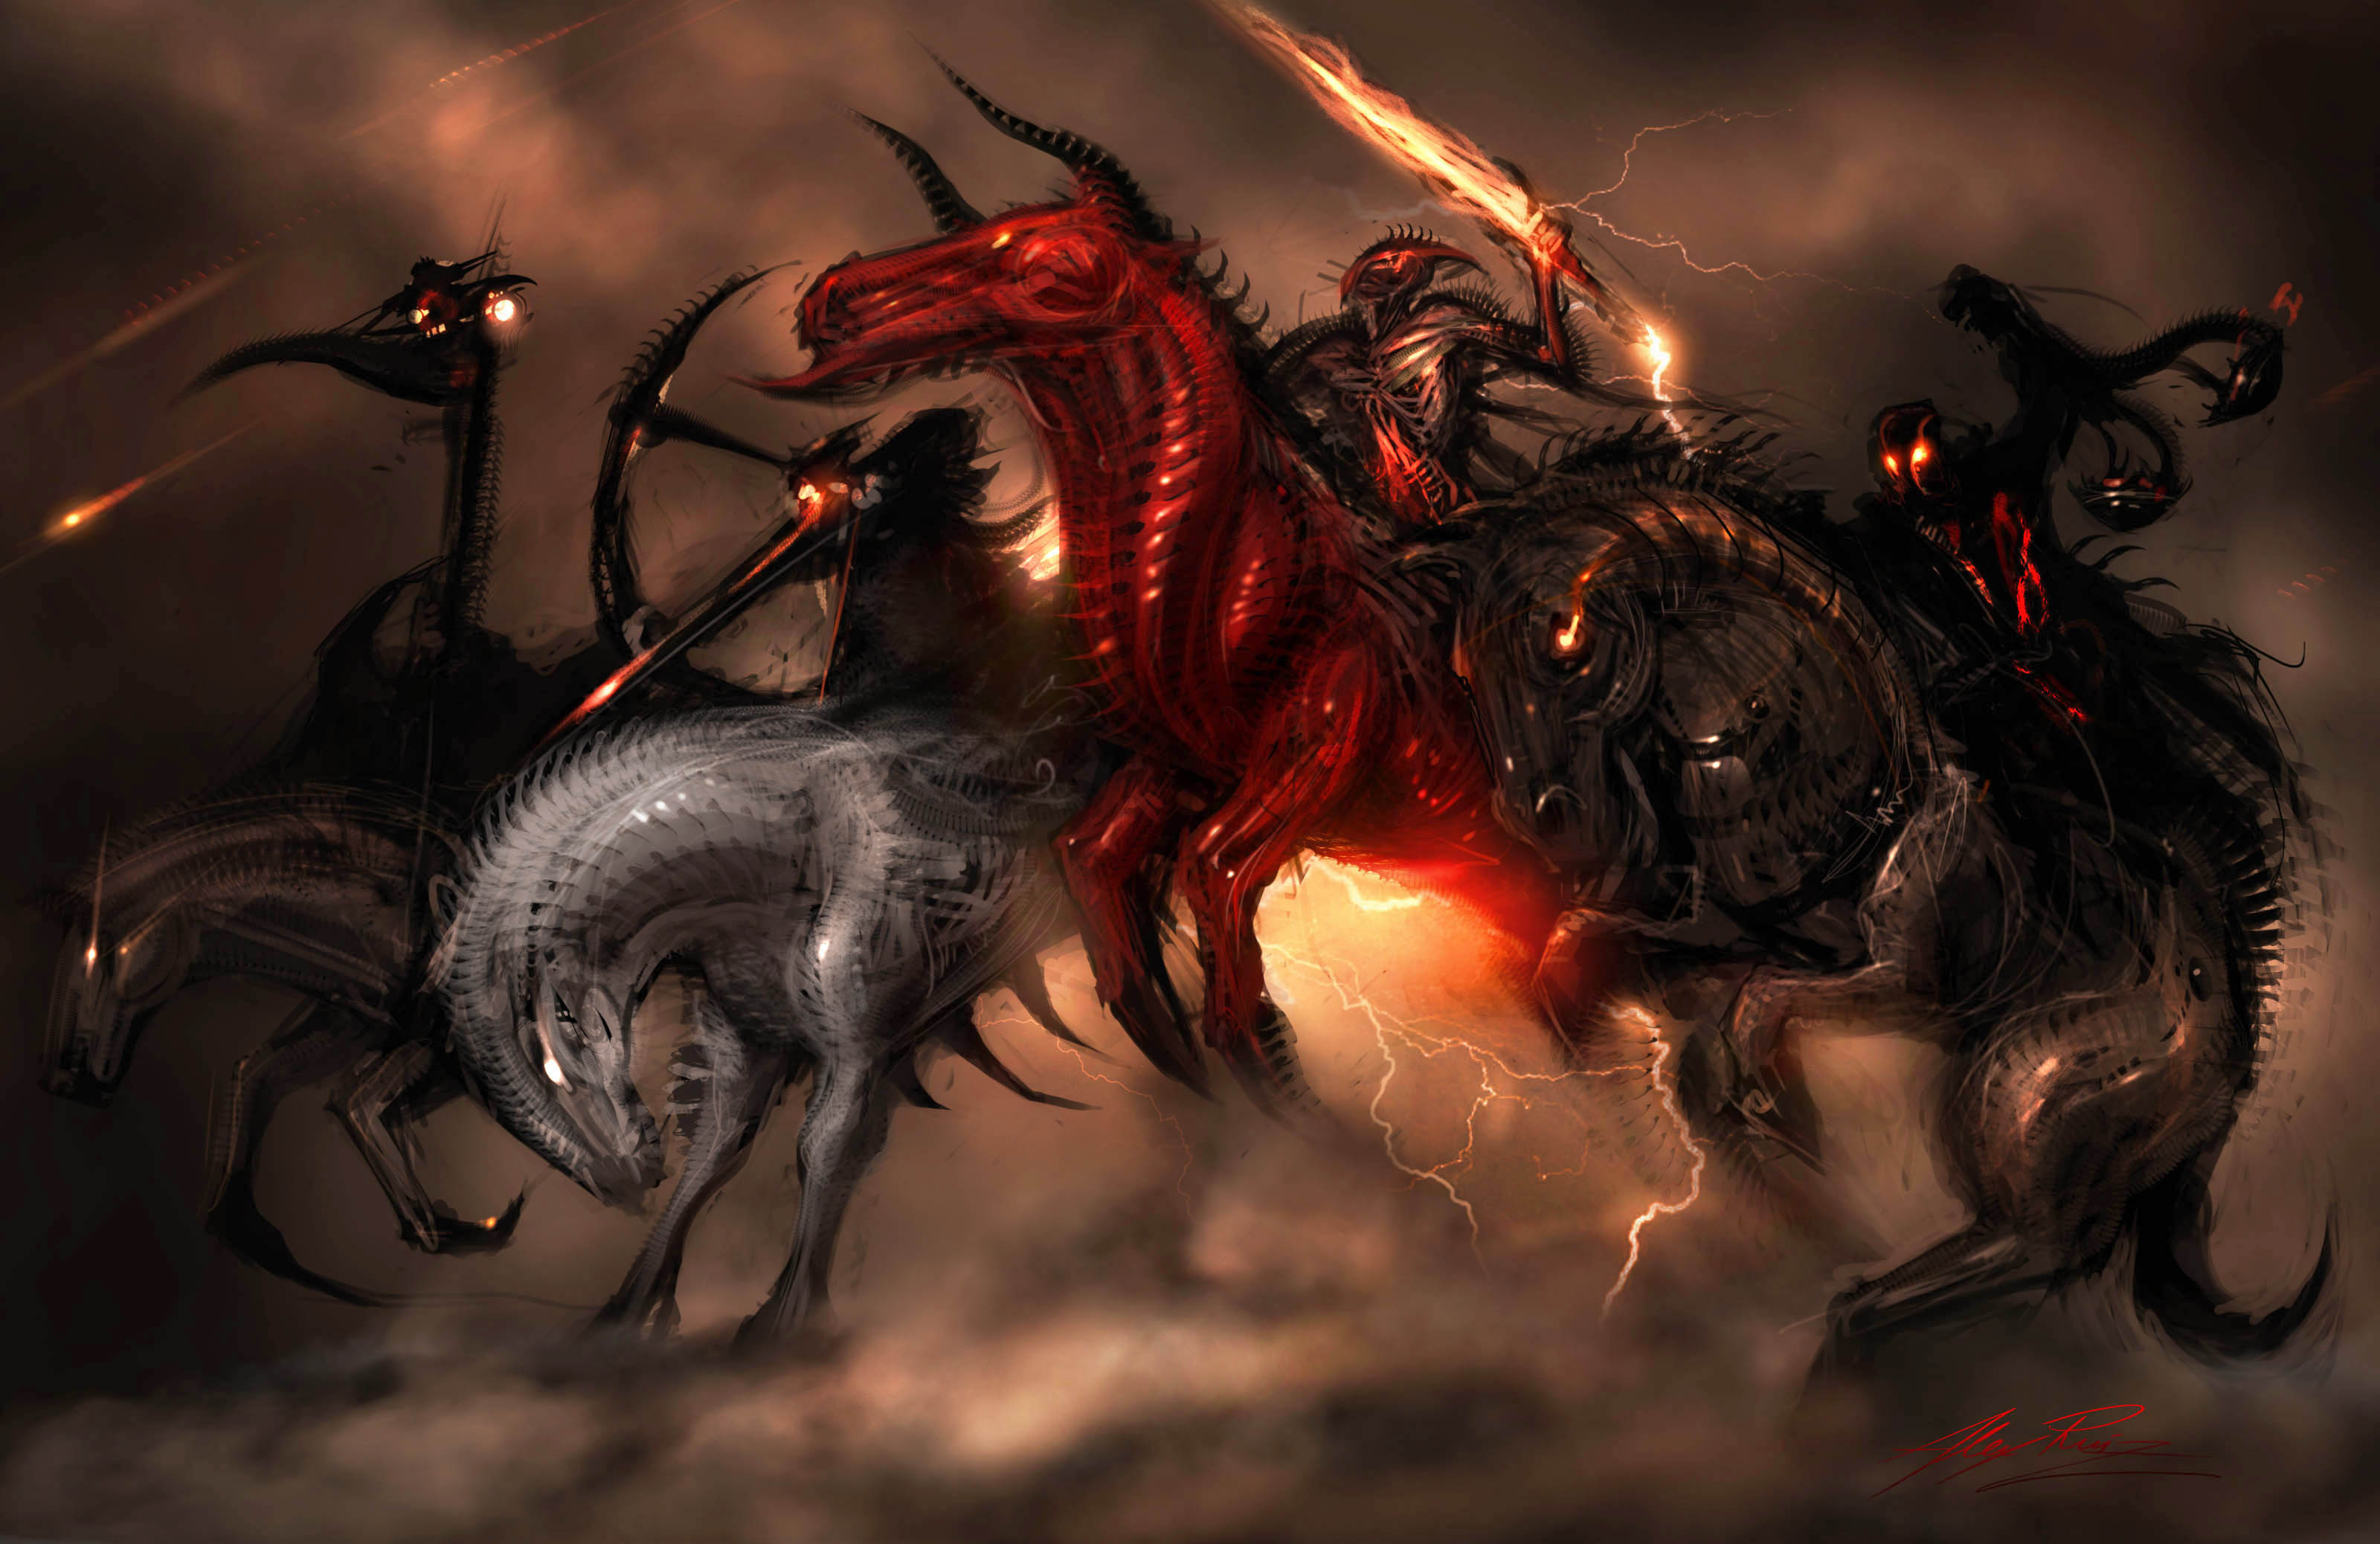 Horsemen of the Apocalypse dark horror religion fantasy art horse 3200x2076